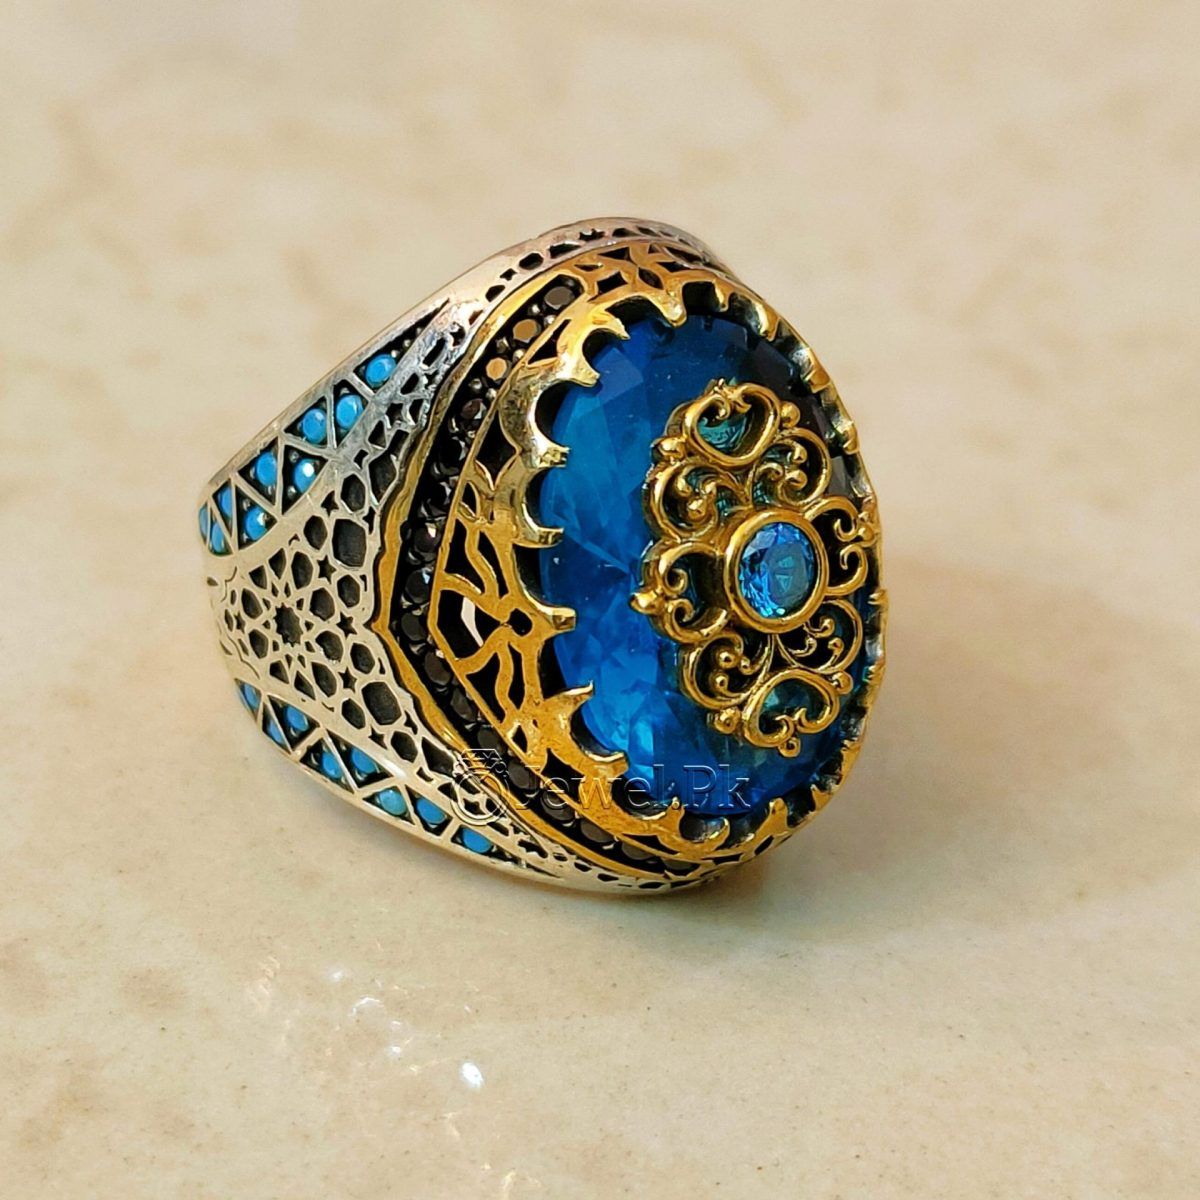 Turkish Rings 925 Silver Handmade Imported Ottoman Rings Pakistan 5 natural gemstones pakistan + 925 silver jewelry online